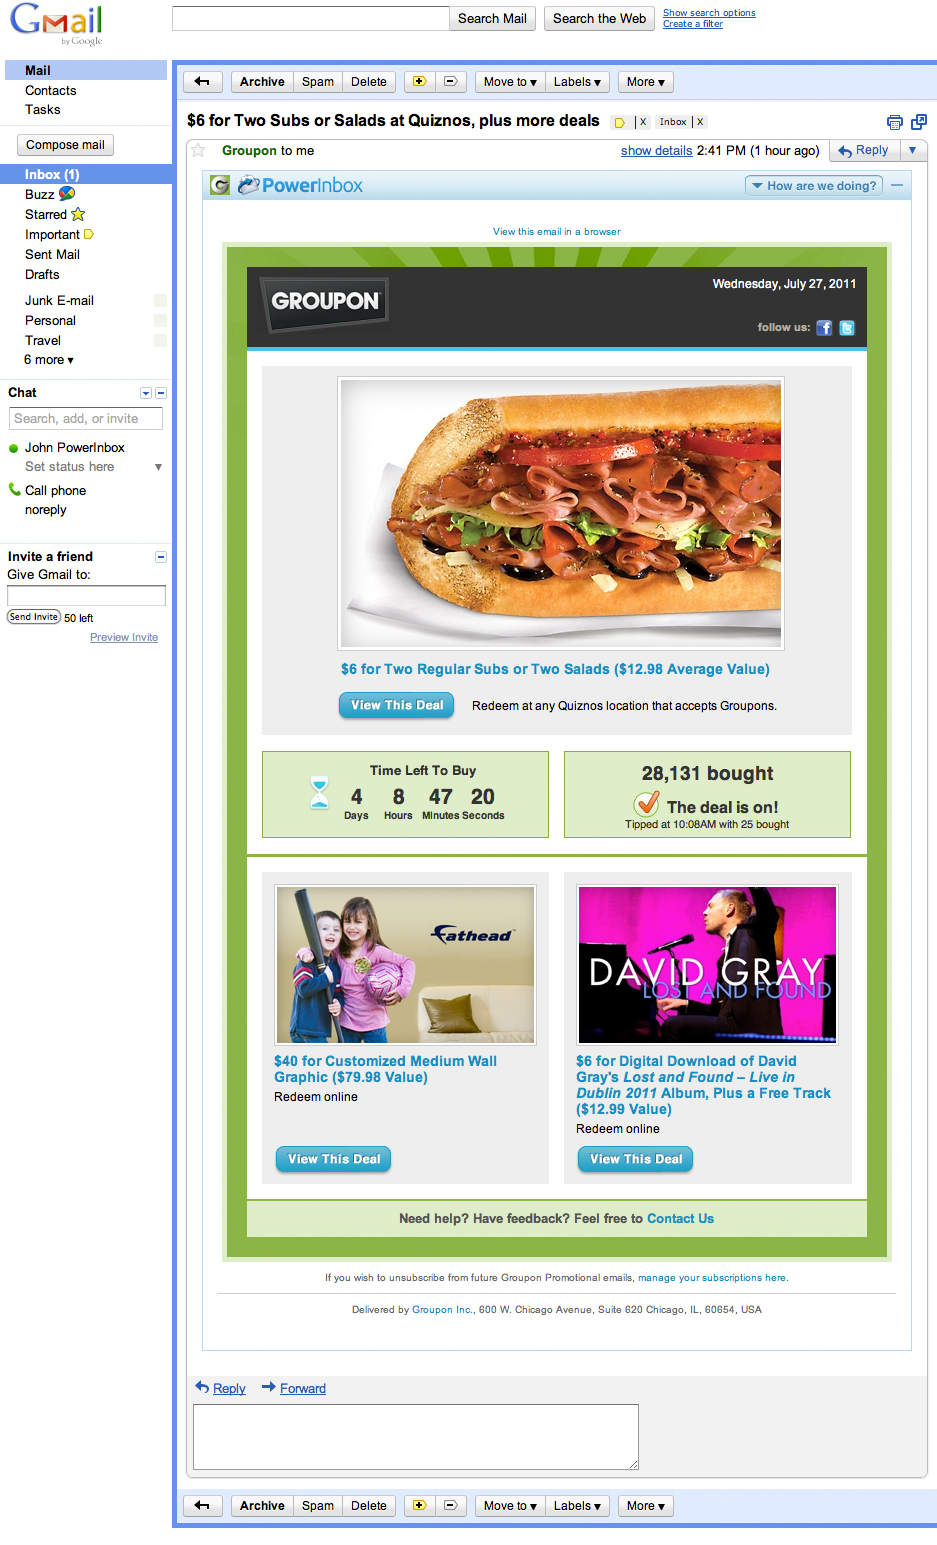 Daily-deal info in your inbox from Groupon (PowerInbox)